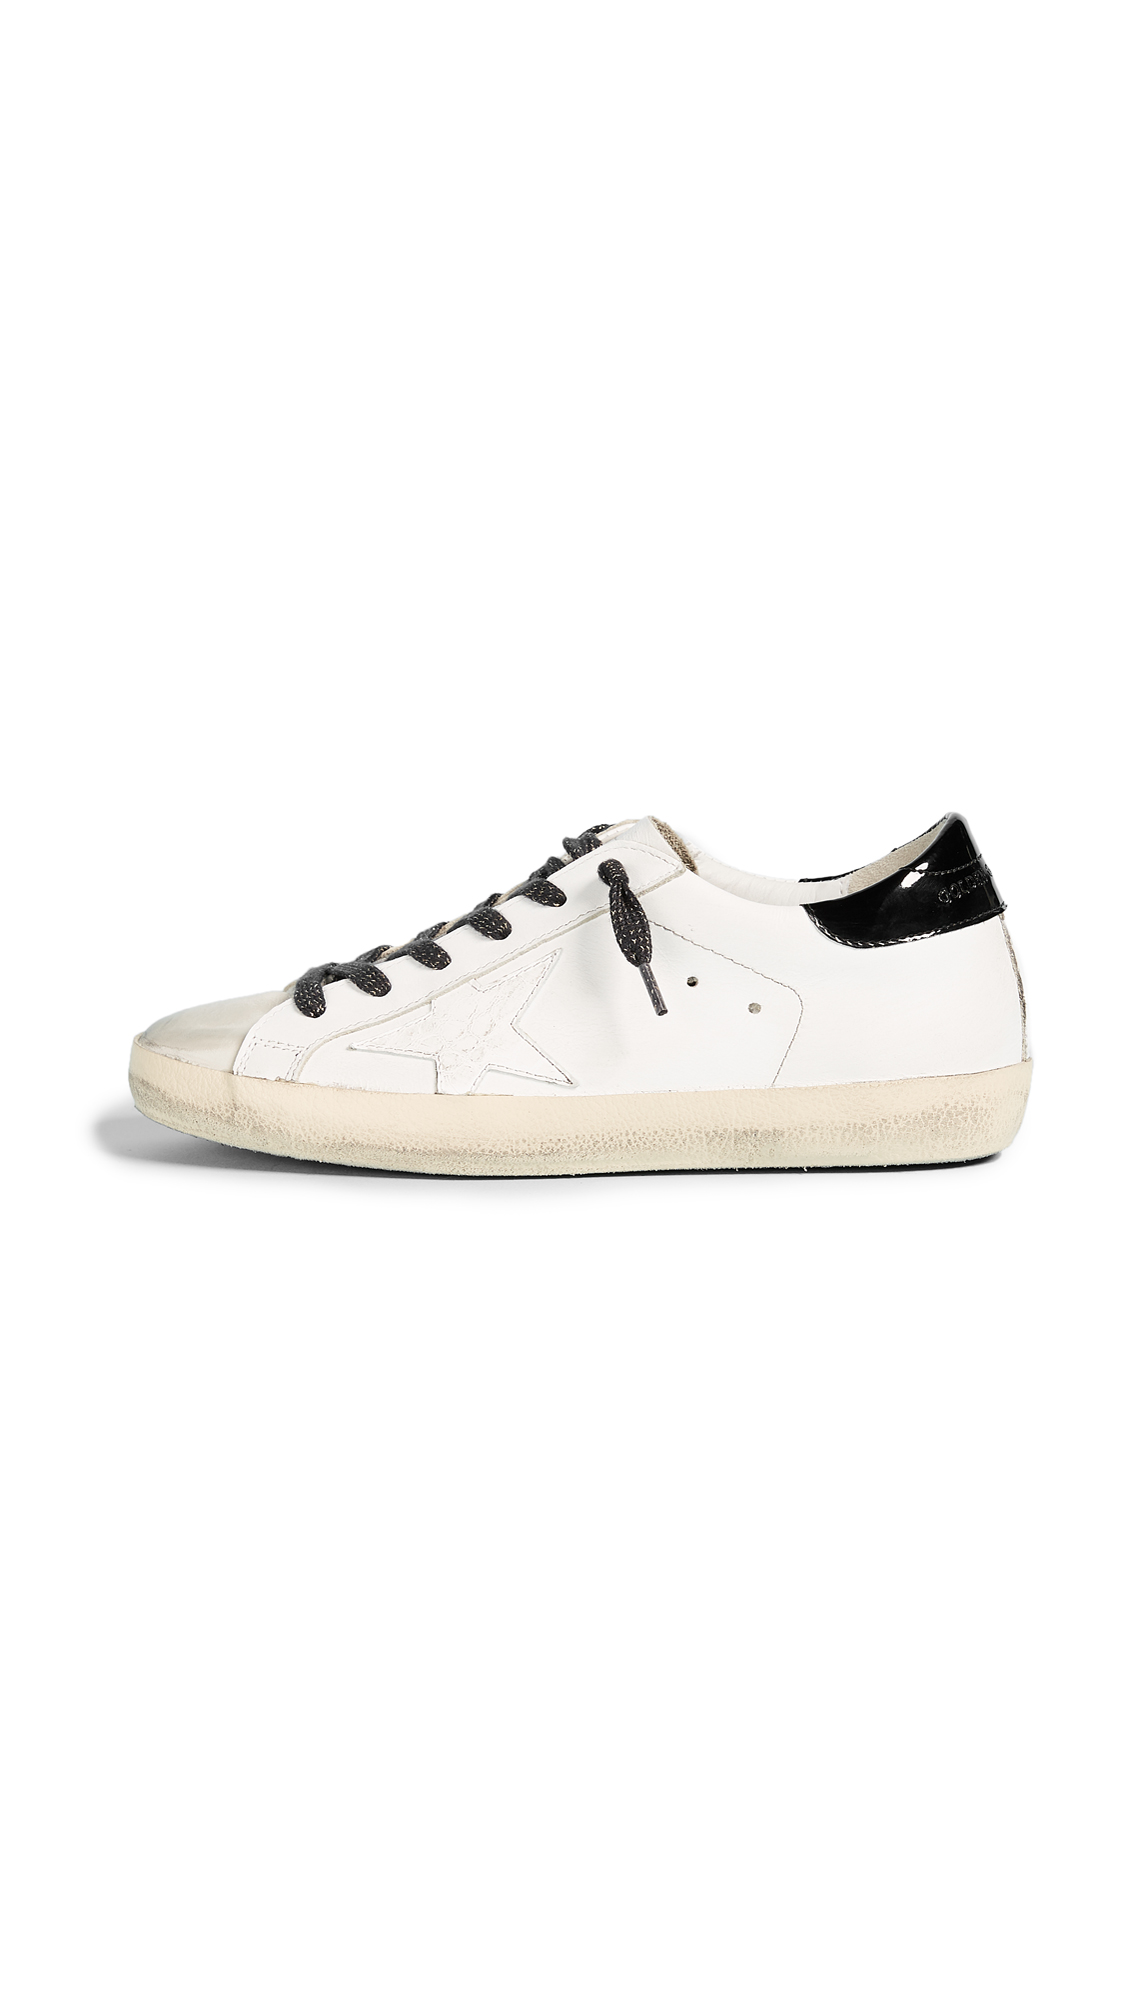 Golden Goose Superstar Sneakers - White/Croc Star